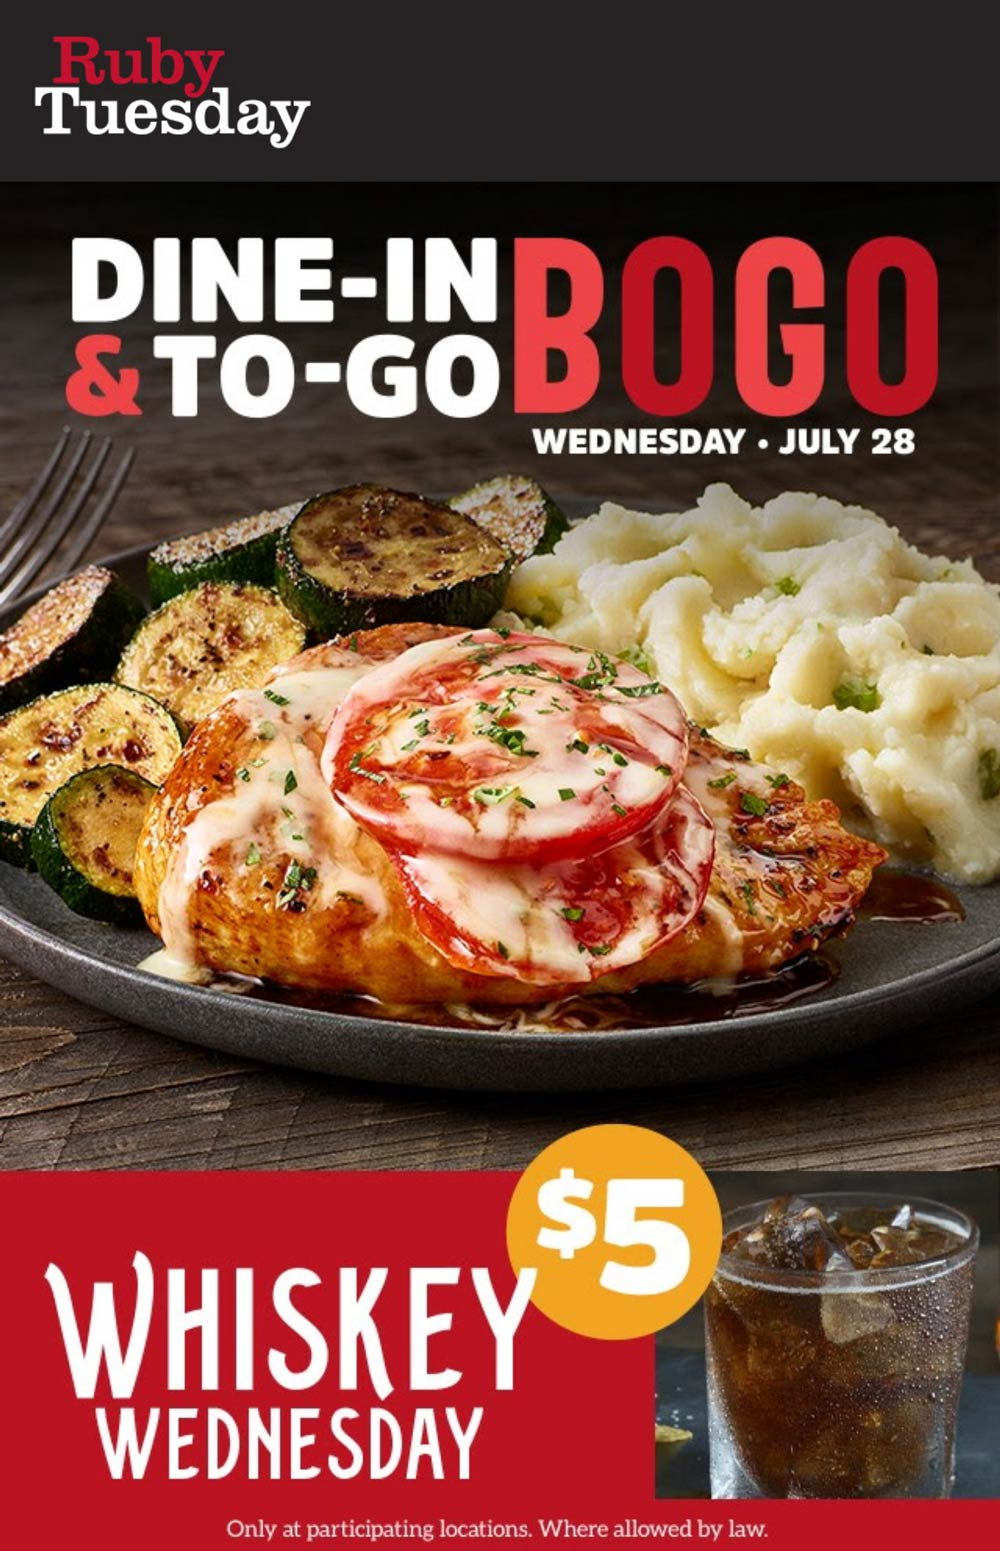 Ruby Tuesday restaurants Coupon  Second entree free today at Ruby Tuesday #rubytuesday